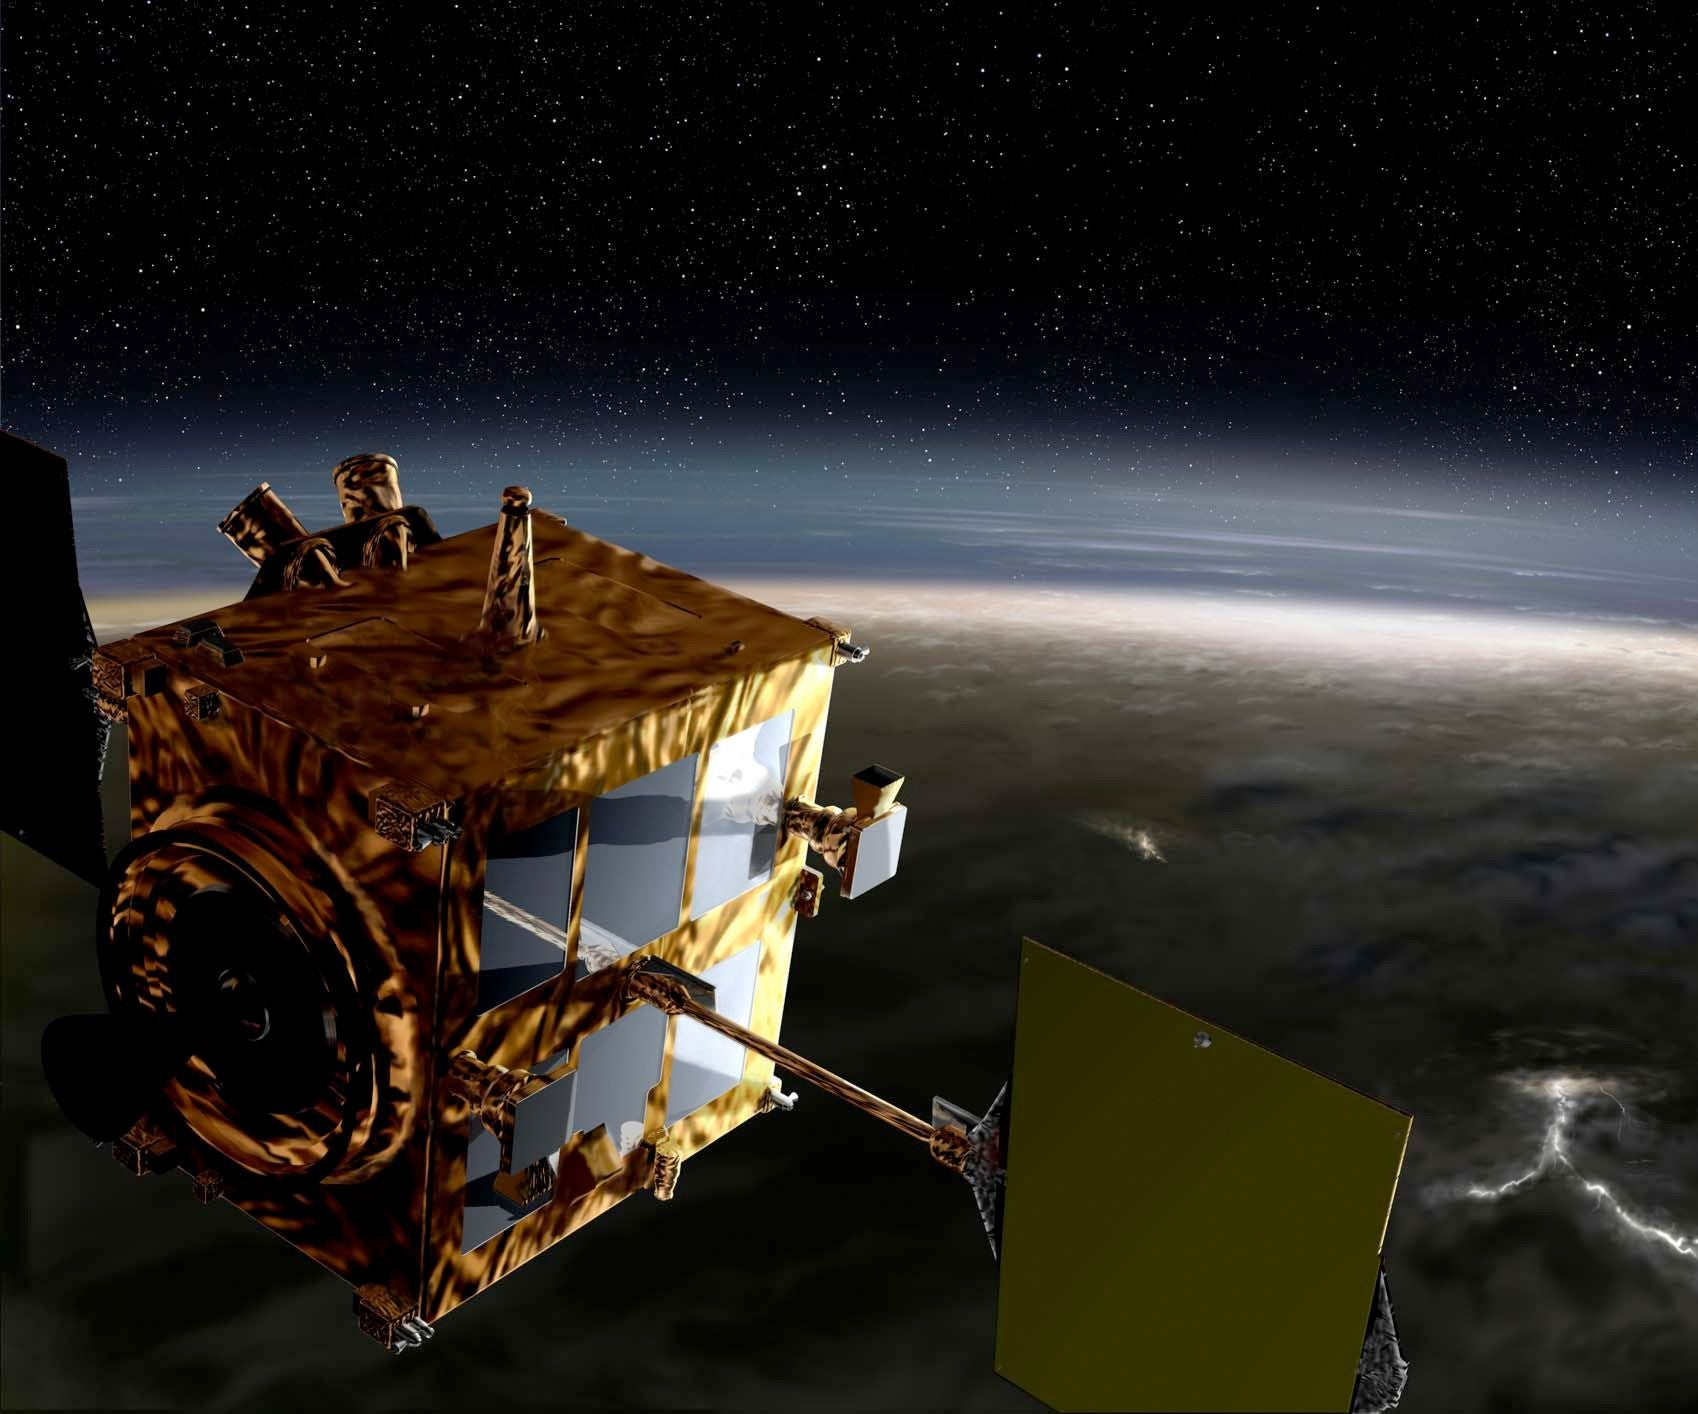 Tonight is the Last Chance for Japan's Venus Orbiter to Reach the Planet